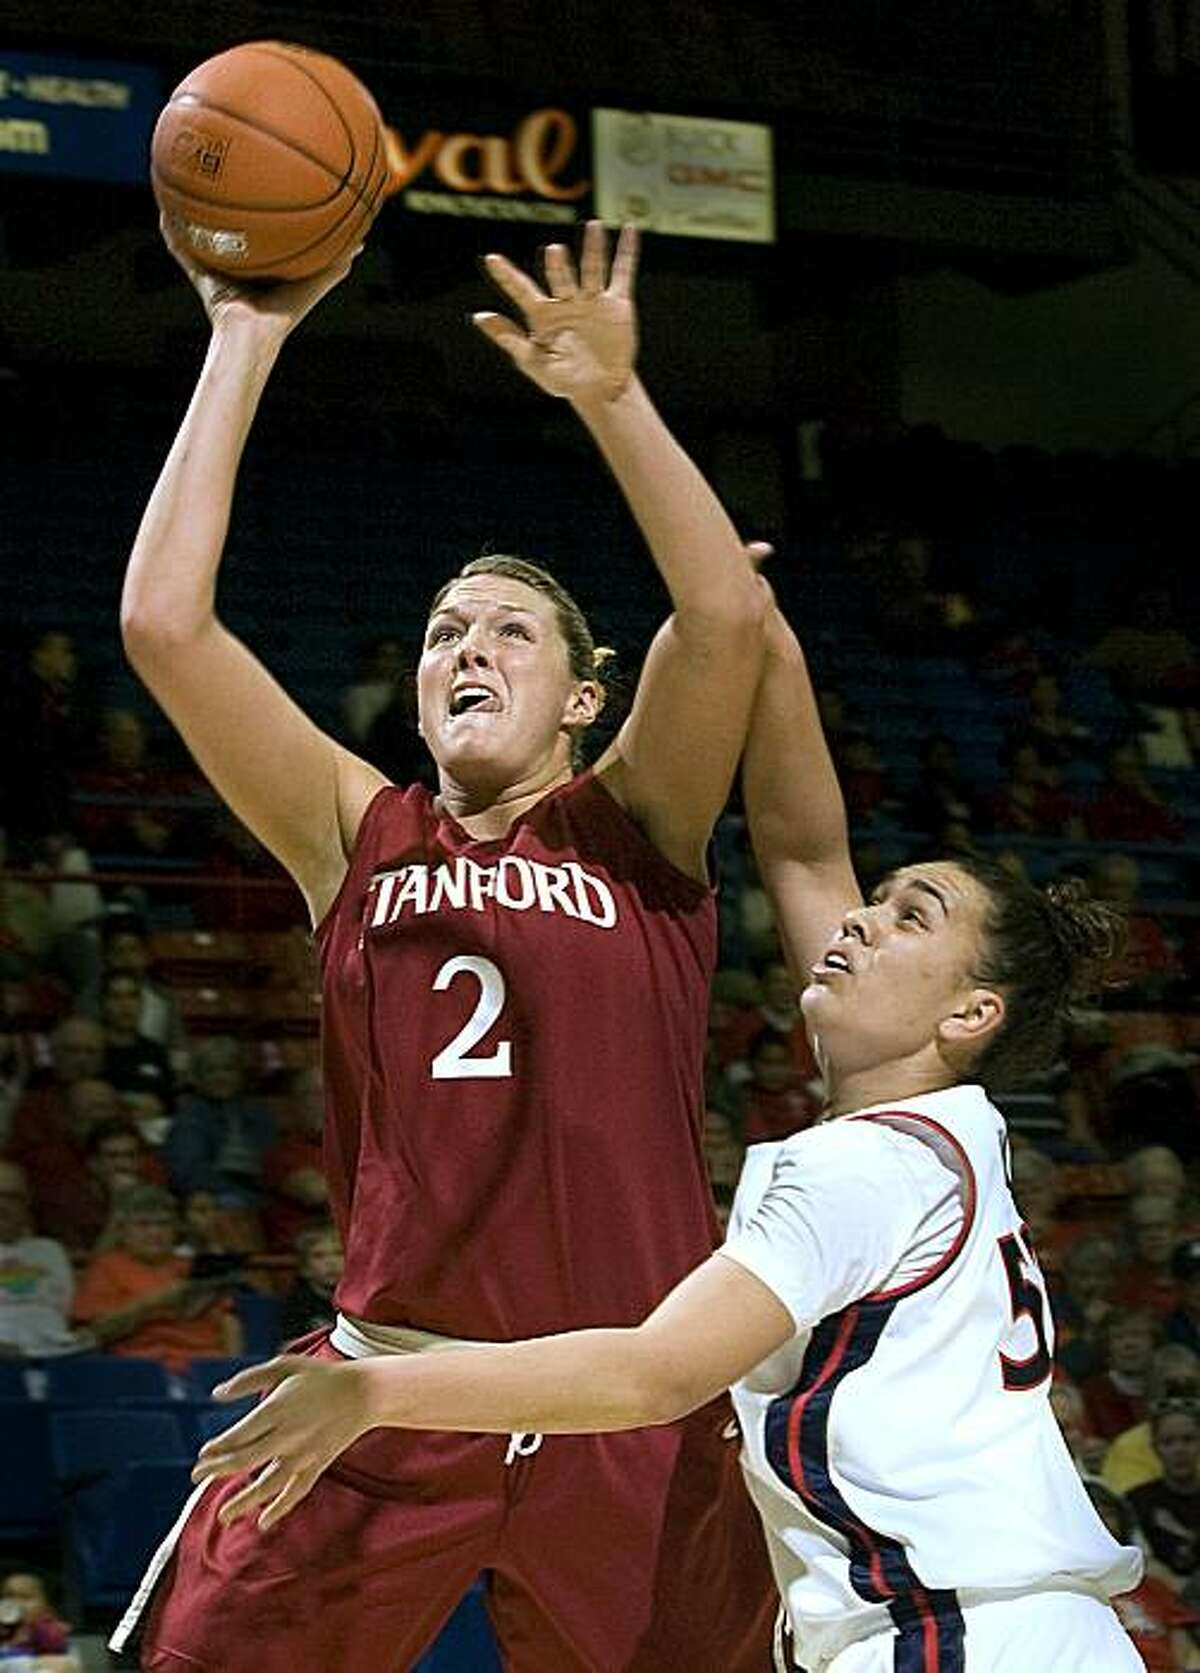 Stanford's Jayne Appel (2) shoots over Arizona's Soana Lucet in the first half of an NCAA college basketball game at McKale Center in Tucson, Ariz., Saturday, Feb. 27, 2010.